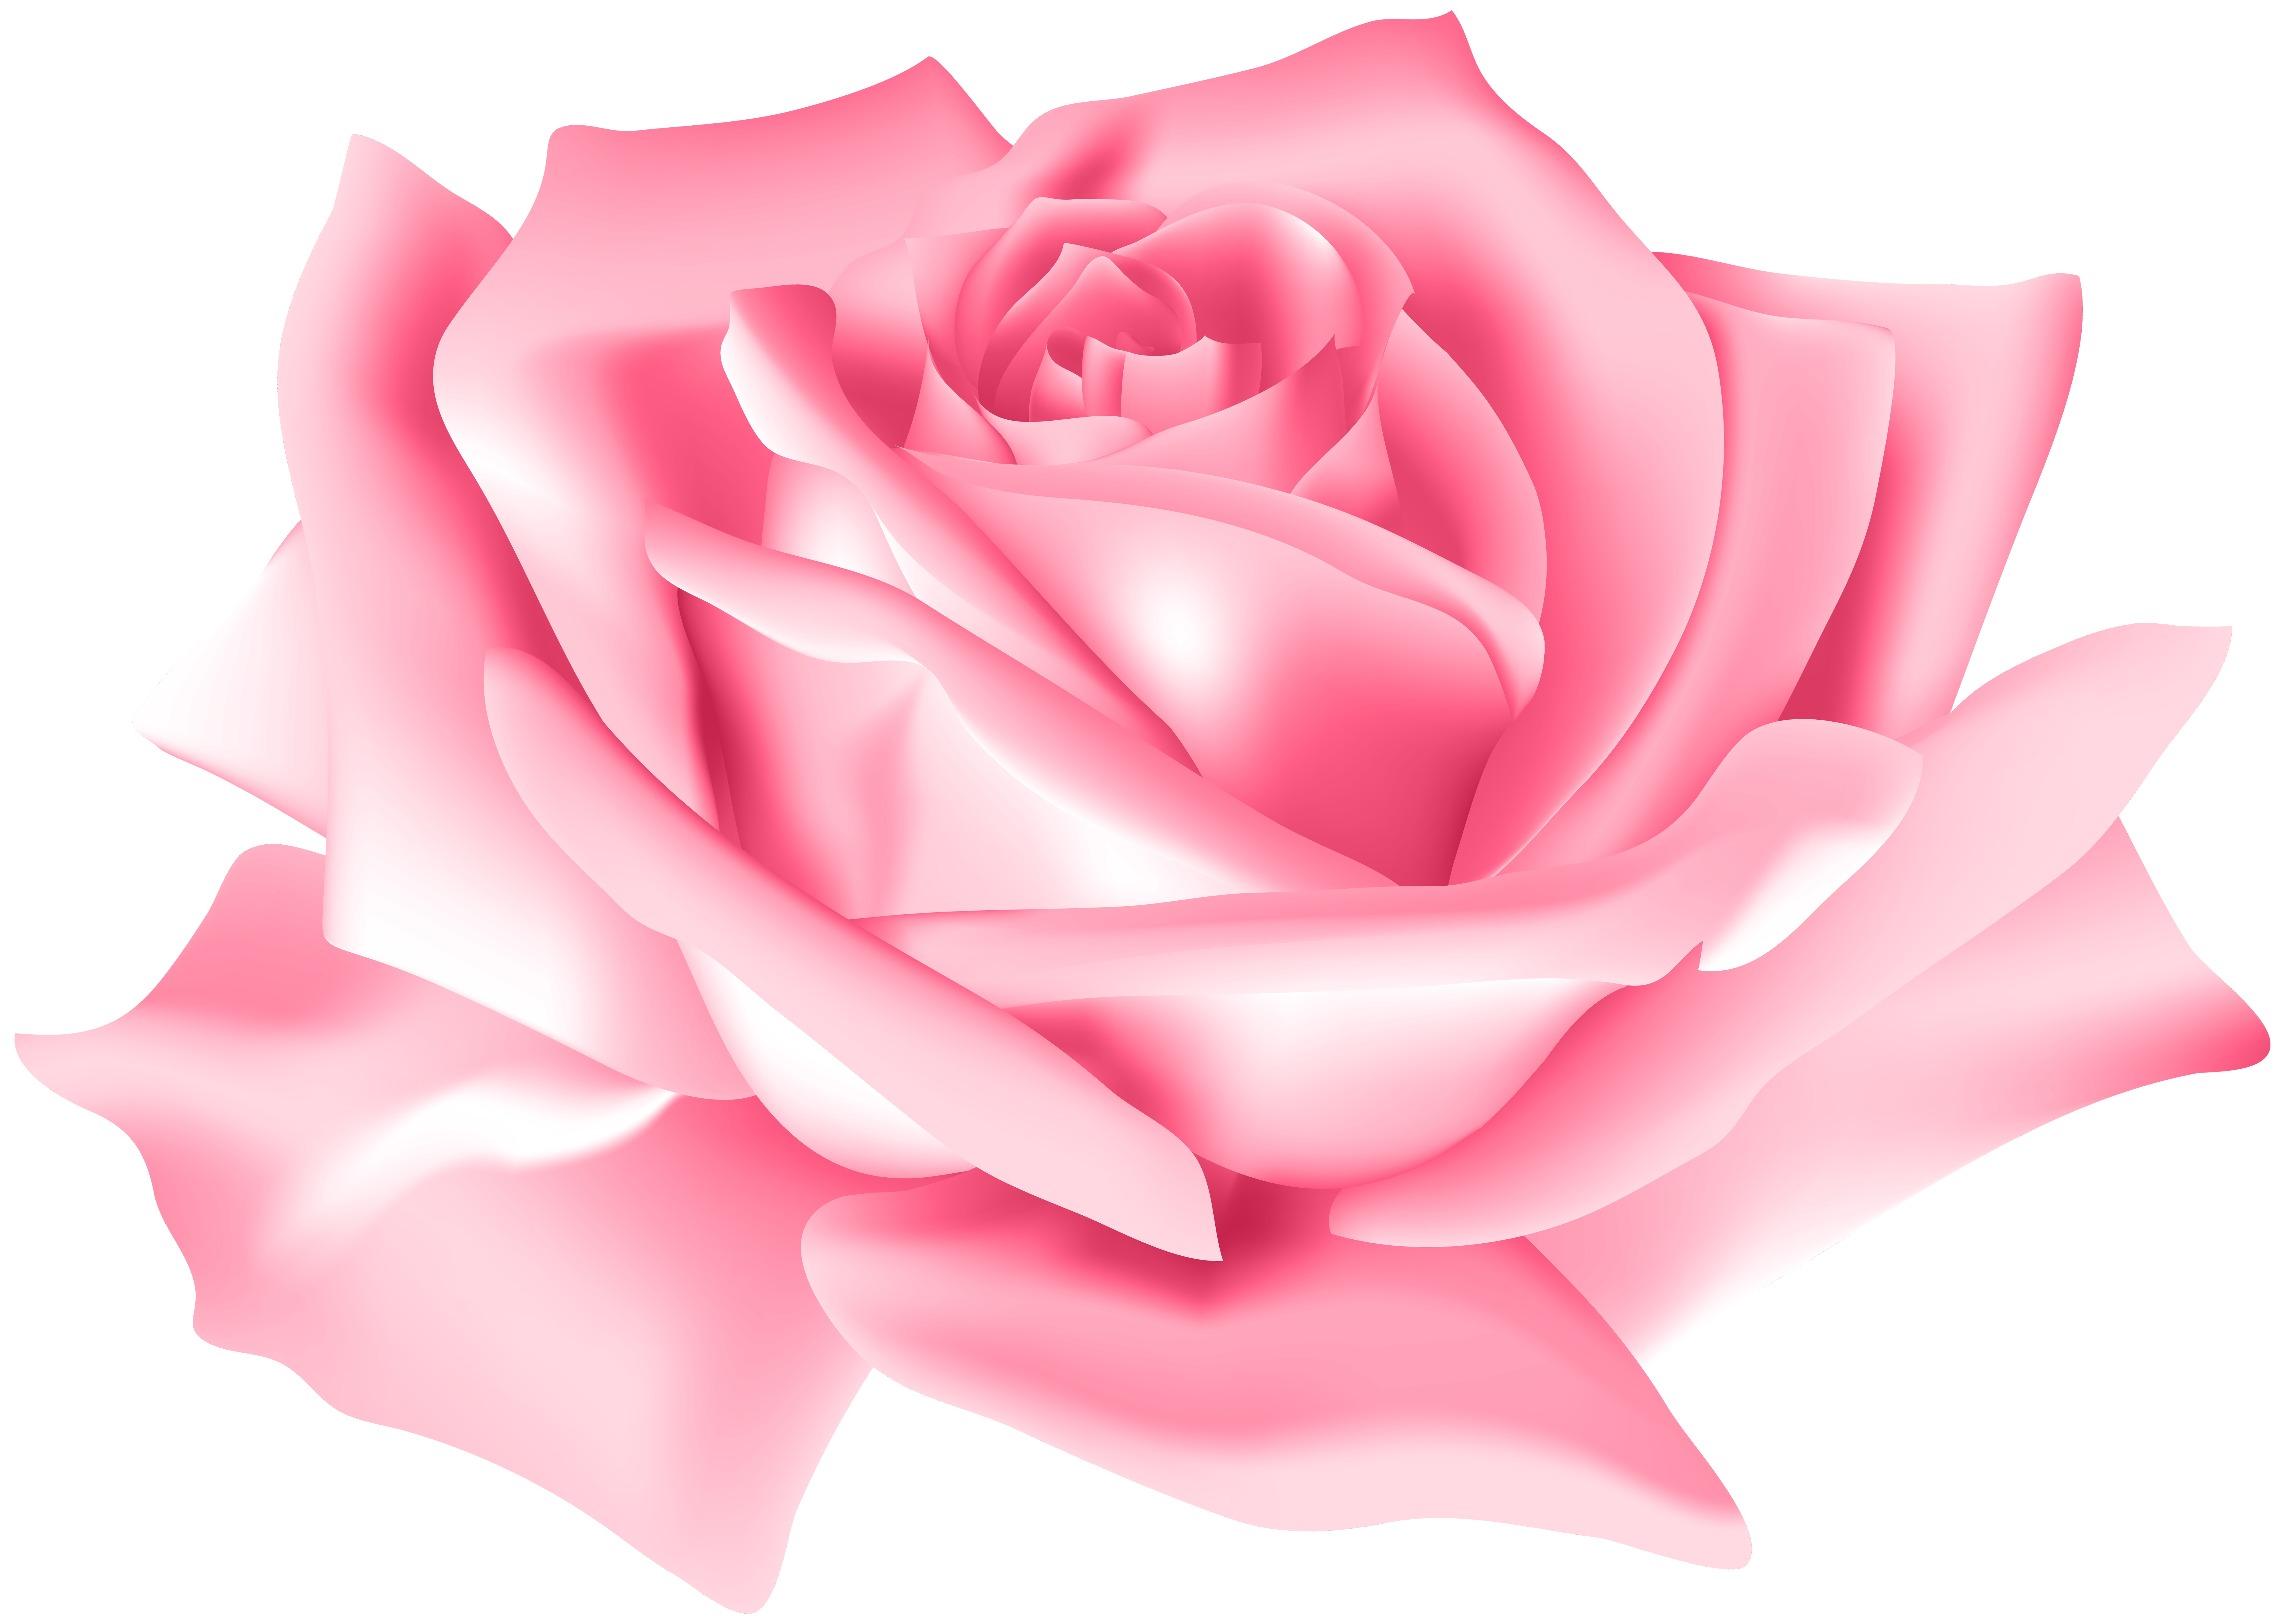 Pink rose flower clipart vector free library Pink Rose Flower PNG Clip Art Image | Gallery Yopriceville ... vector free library